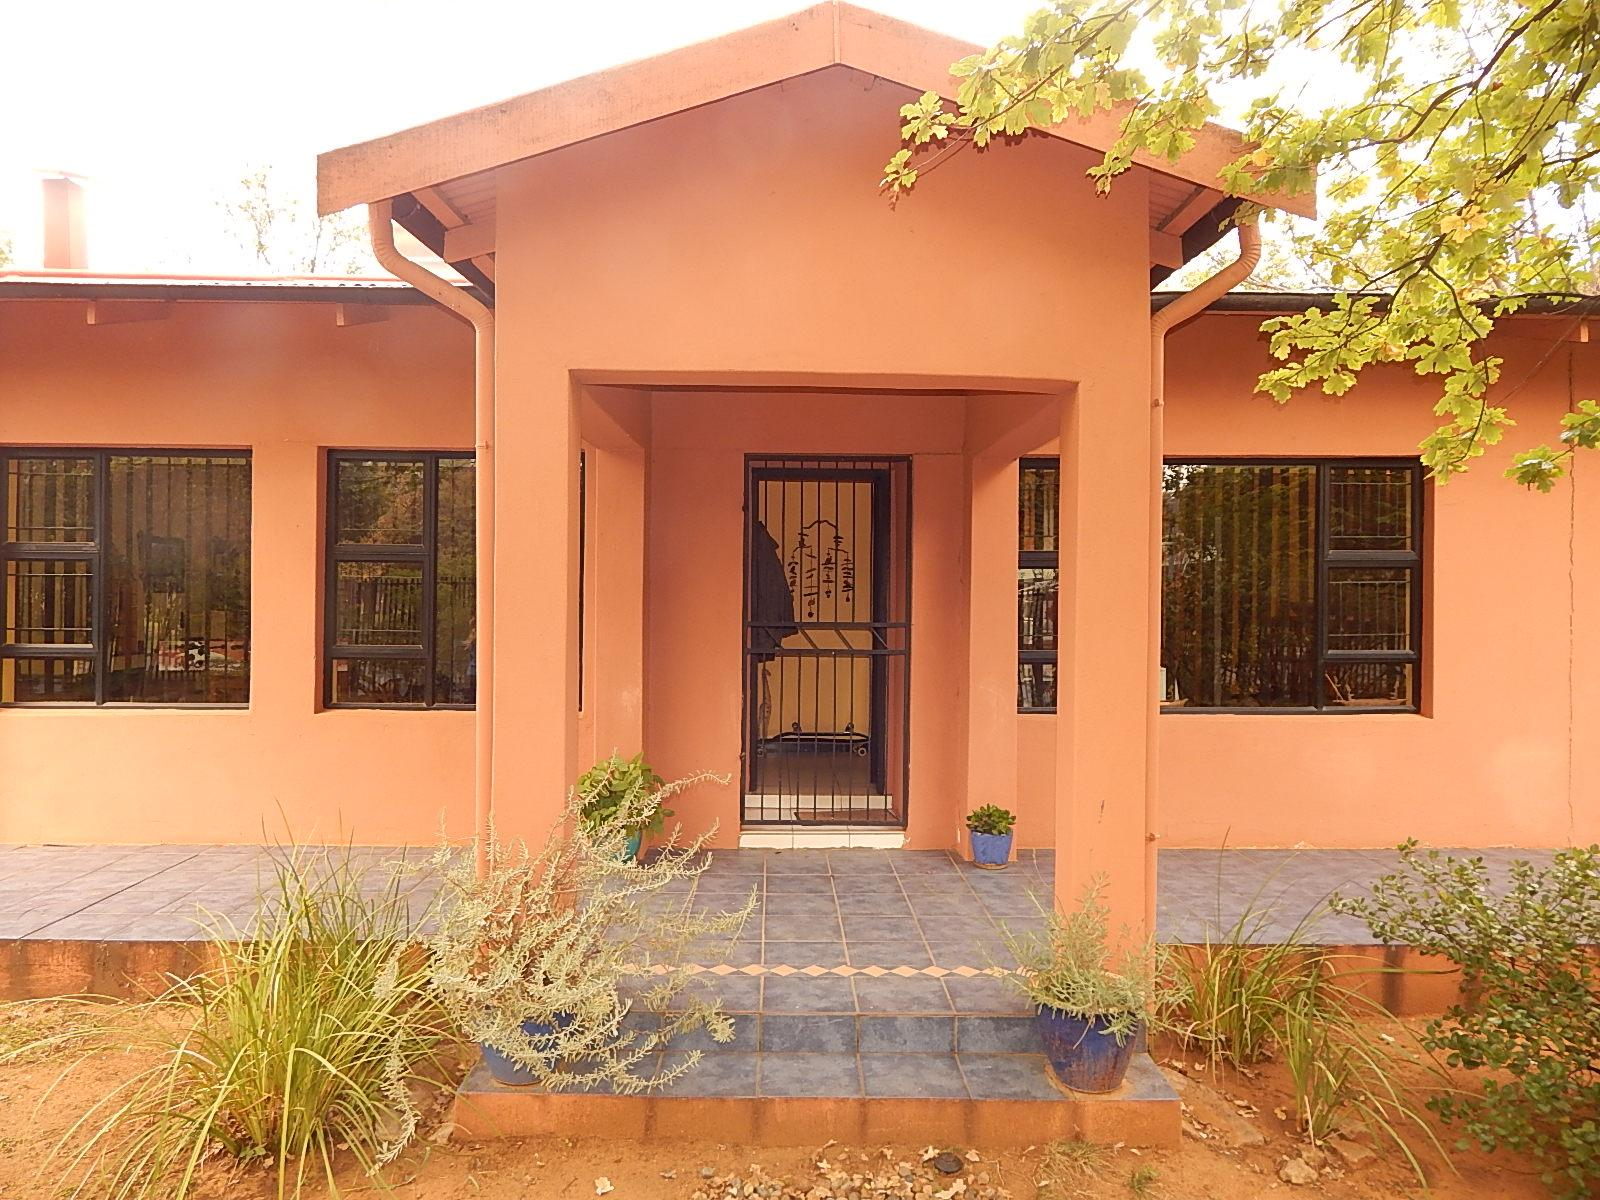 3 Bedroom House for Sale For Sale in Bloemfontein - Home Sell - MR143089